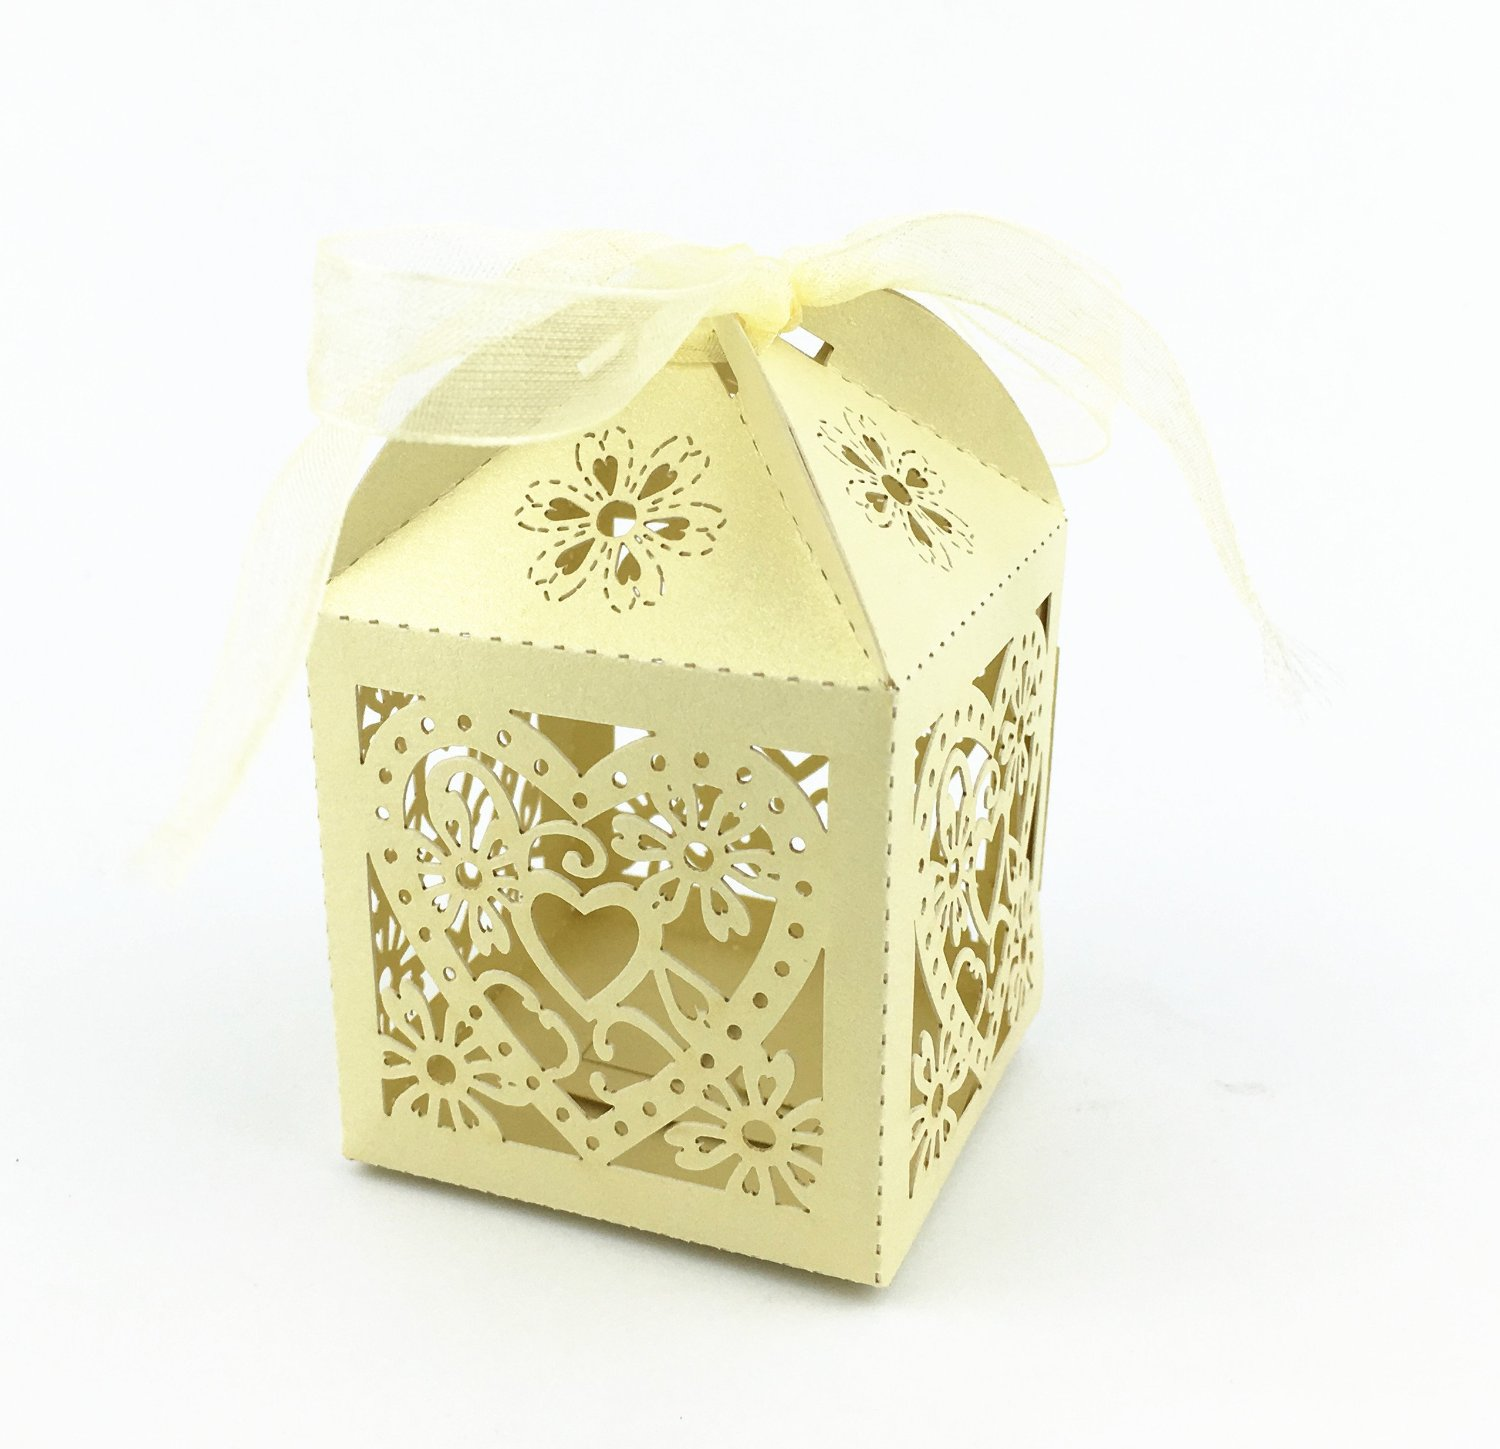 Yansanido candy wedding favor boxes with Ribbons Wedding Favors Candy Boxes Hollow Out Love Heart Laser Cut Paper Box Wedding Party Favor, 50 Count ( love white gold)